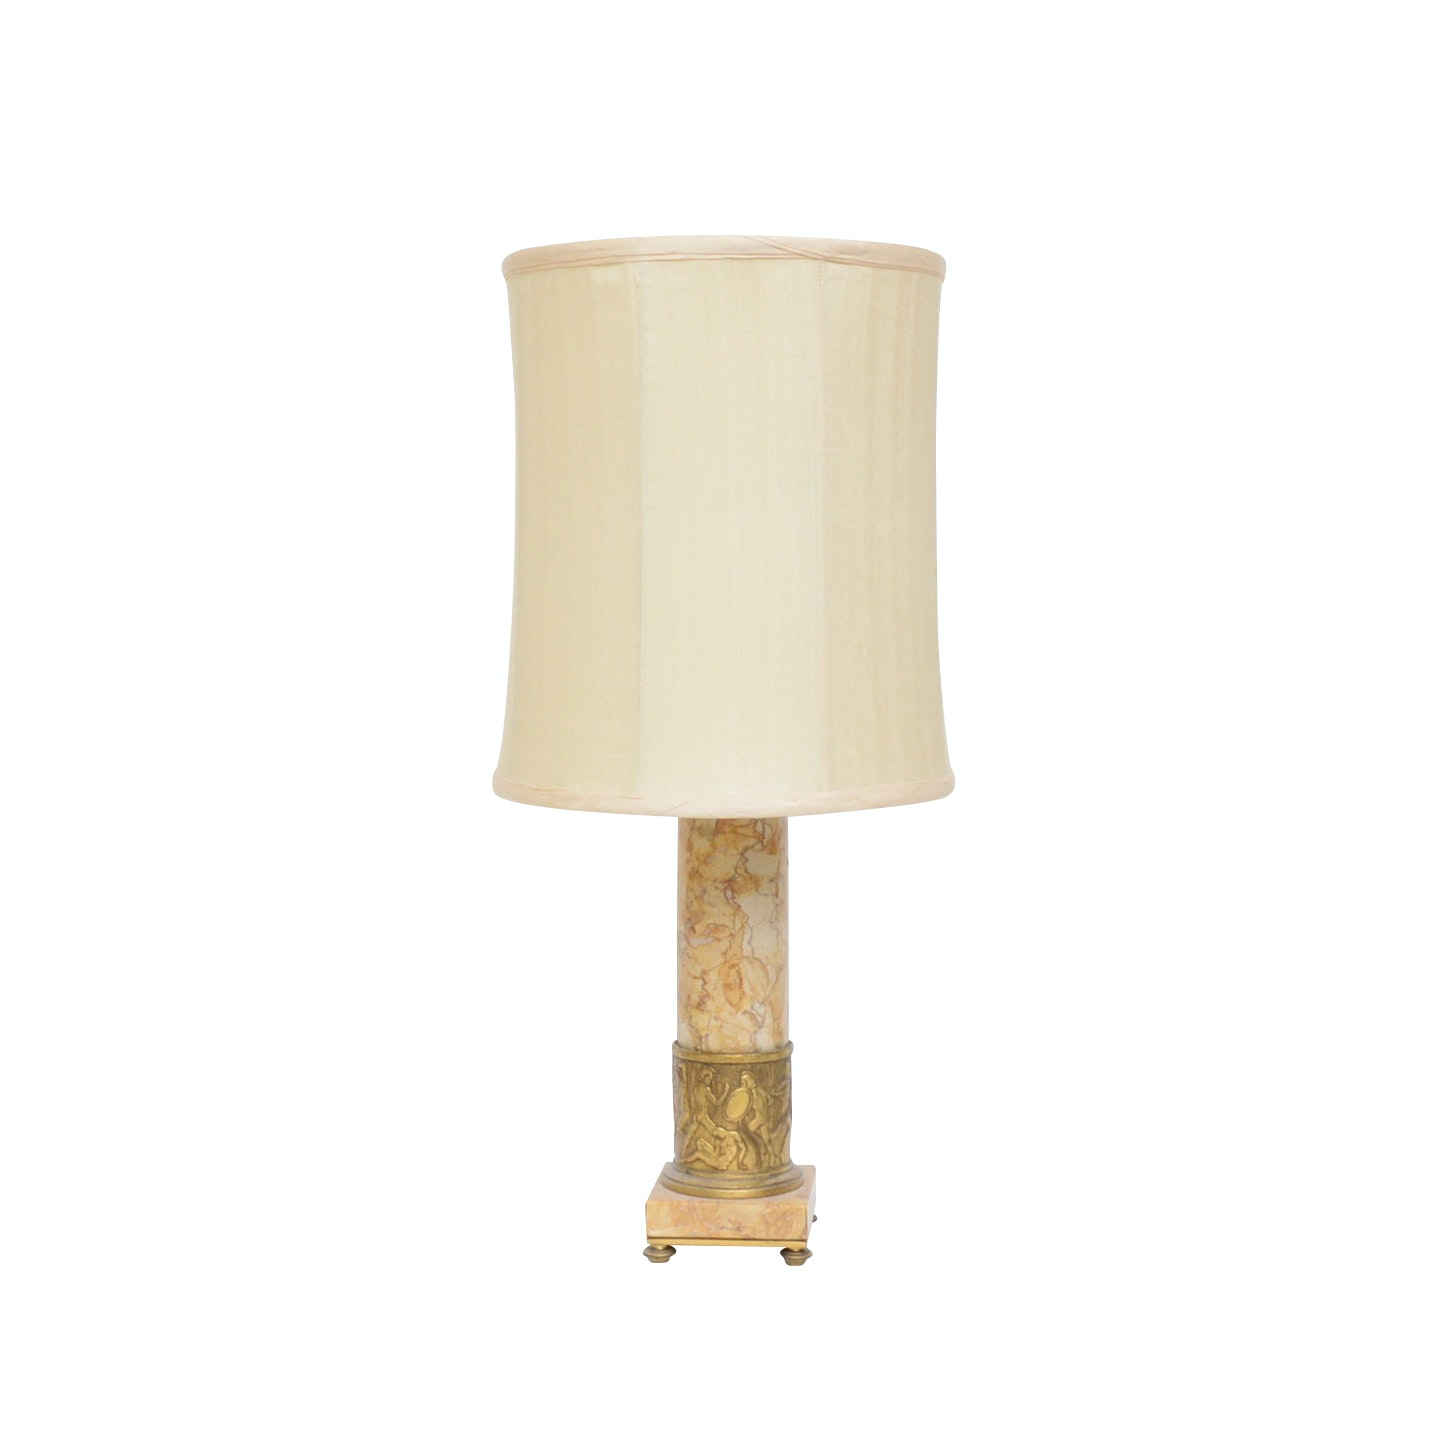 NEoclassical Style Brass and Marble Table Lamp with Edward Alden Shade